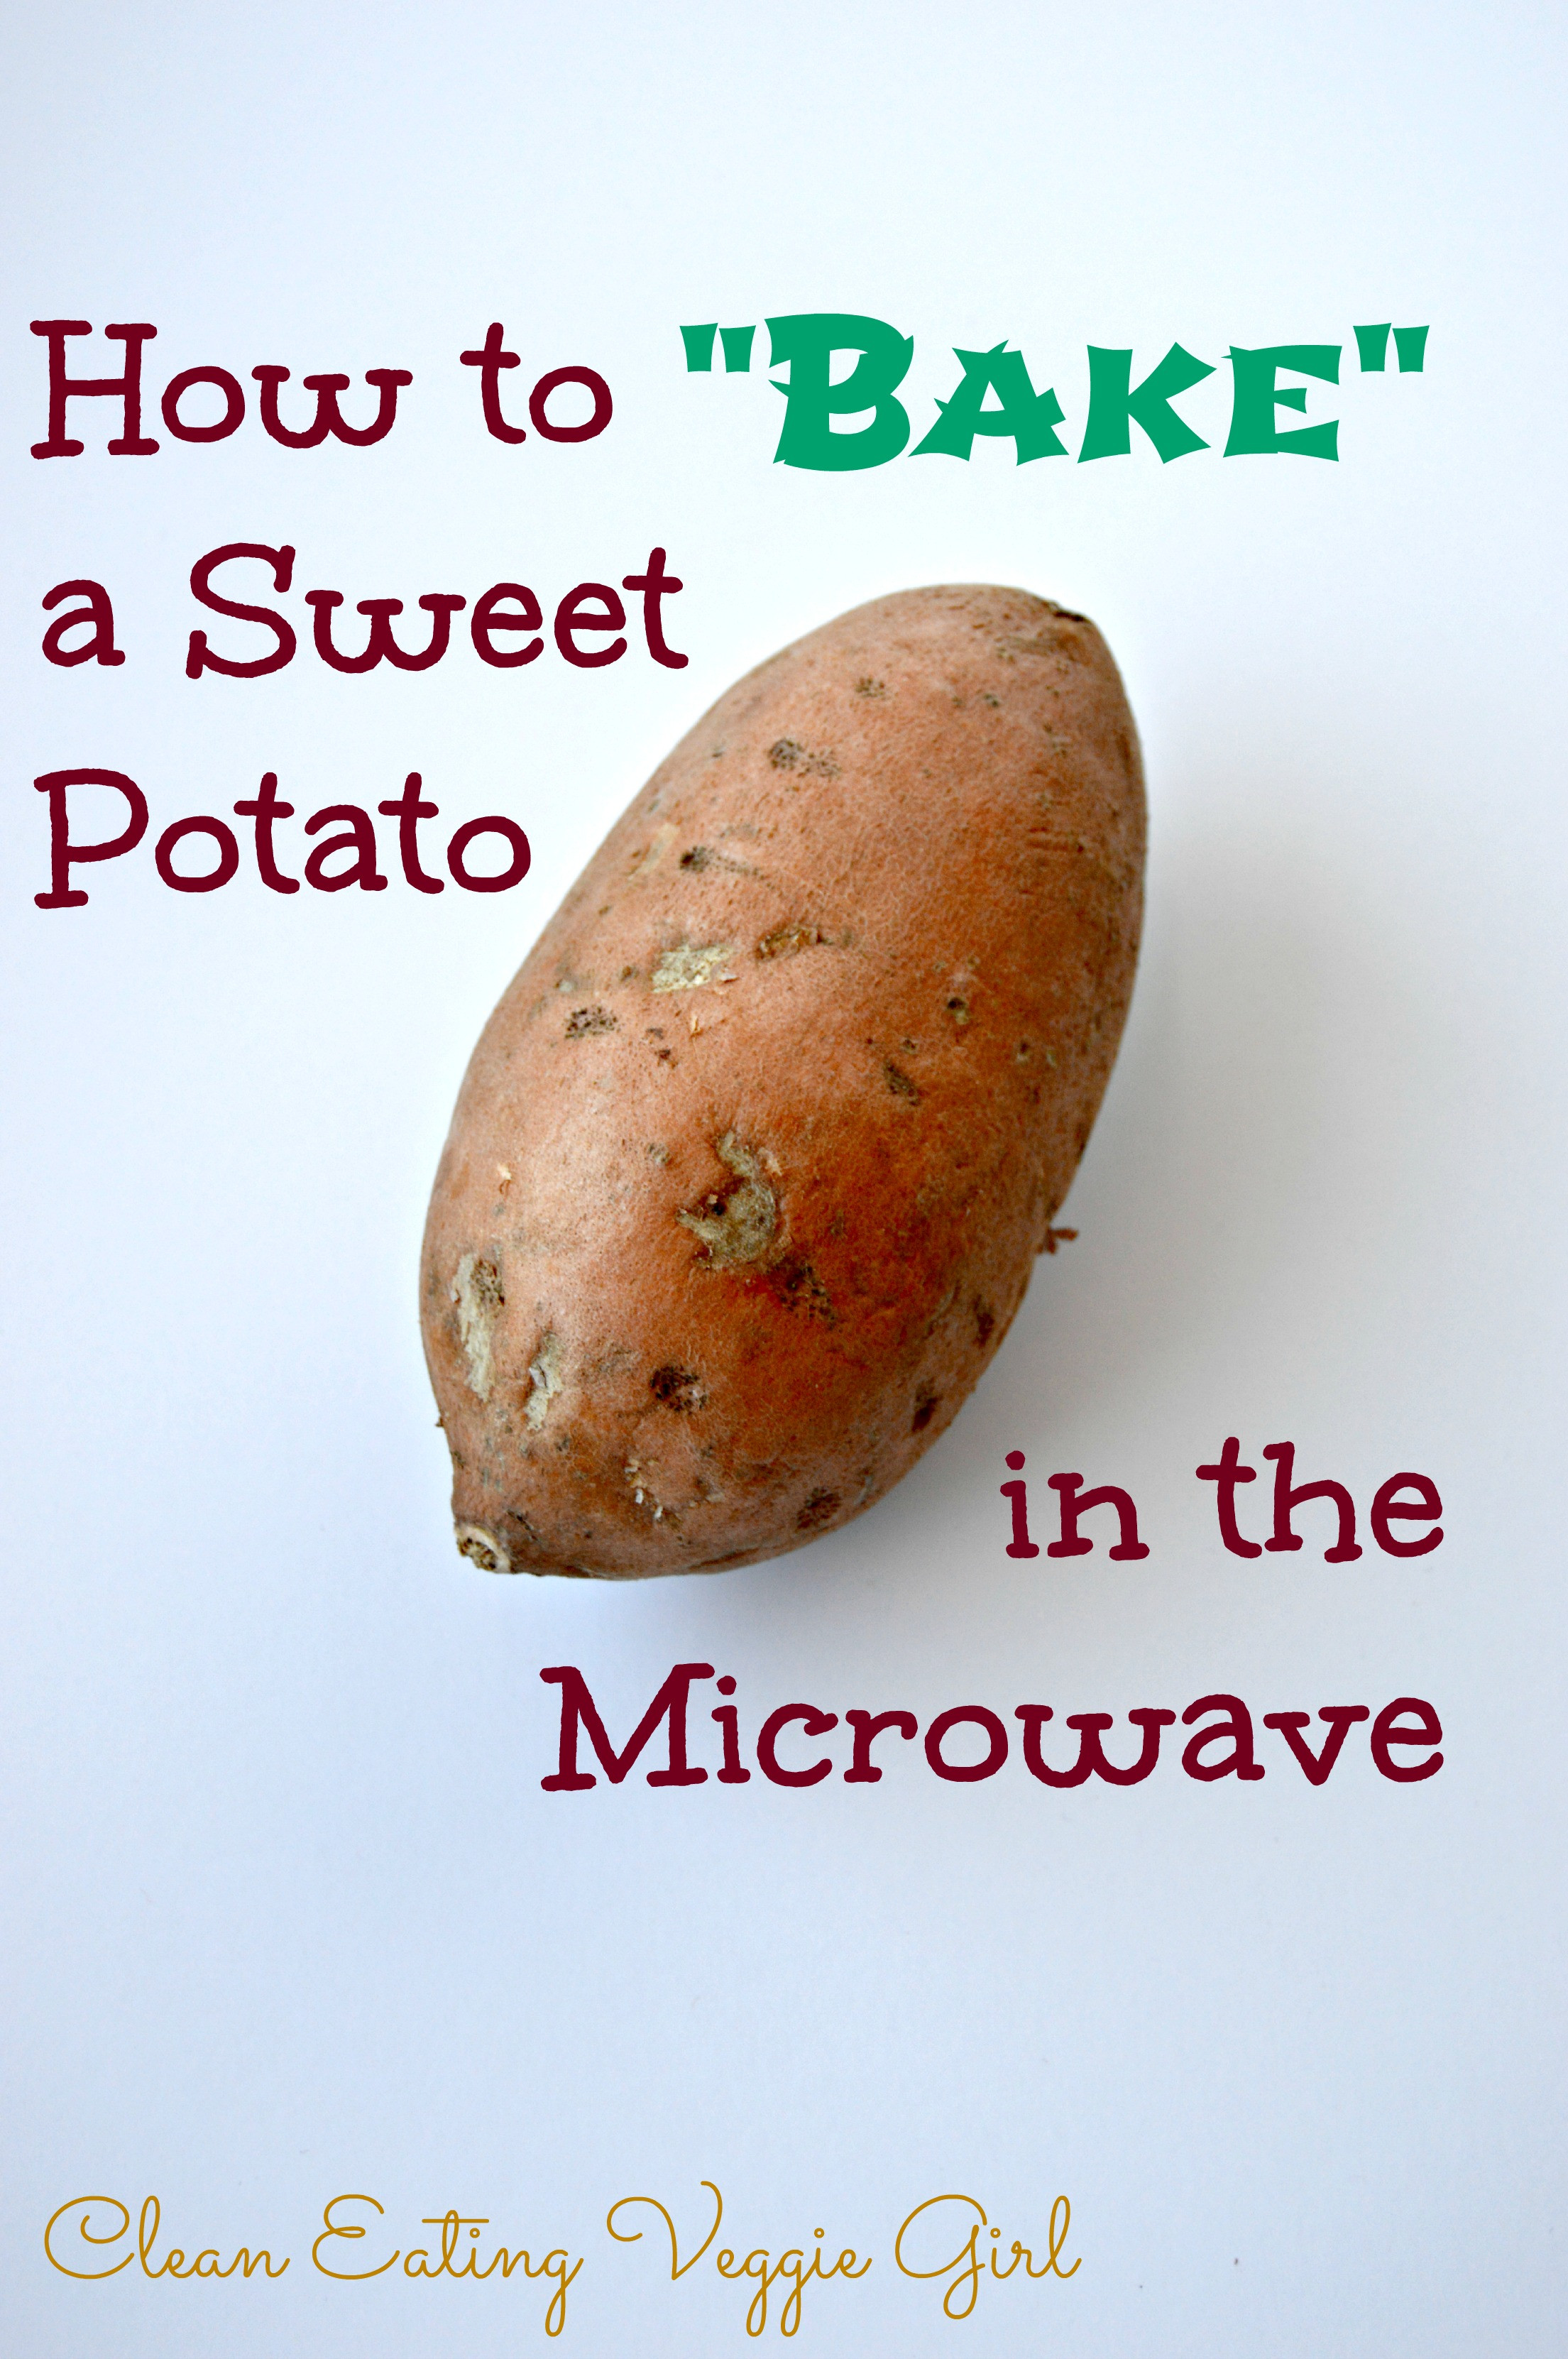 Bake Potato In Microwave  How to Make a Baked Sweet Potato in the Microwave Clean